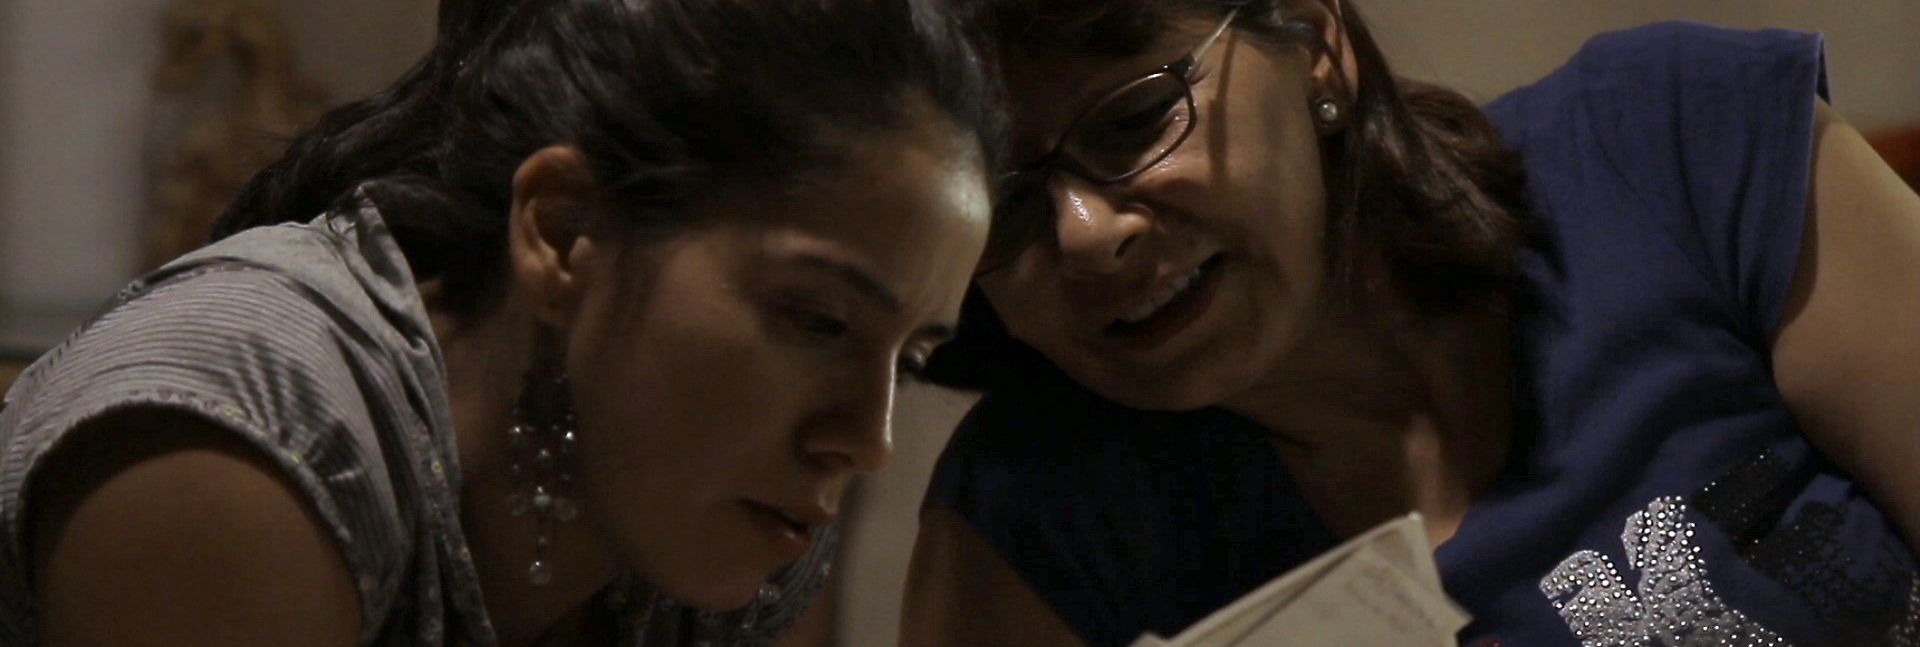 """ADRIANA'S PACT  ( El pacto de Adriana , Lissette Orozco, Chile, 2017, 96 min. In Spanish with English subtitles) — Special Jury Mention  New York Premiere   Buy Tickets   Adriana was always director Lissette Orozco's favorite aunt. A confident woman who had settled in Australia, one day in 2007 she is suddenly arrested while visiting her family in Chile and accused of having worked for dictator Pinochet's notorious secret police, DINA. As the aunt denies these accusations, her niece sets out to investigate Adriana's history, managing the tough balancing act of maintaining her role as both niece and filmmaker. """"Raw and compelling… a brave documentary"""" (Jay Weissberg,  Variety ), Lissette Orozco's extremely personal debut feature is a riveting personal journey that serves as a timely account of lies and self-deception, both within a family and a nation.   Saturday, February 3, 2pm"""